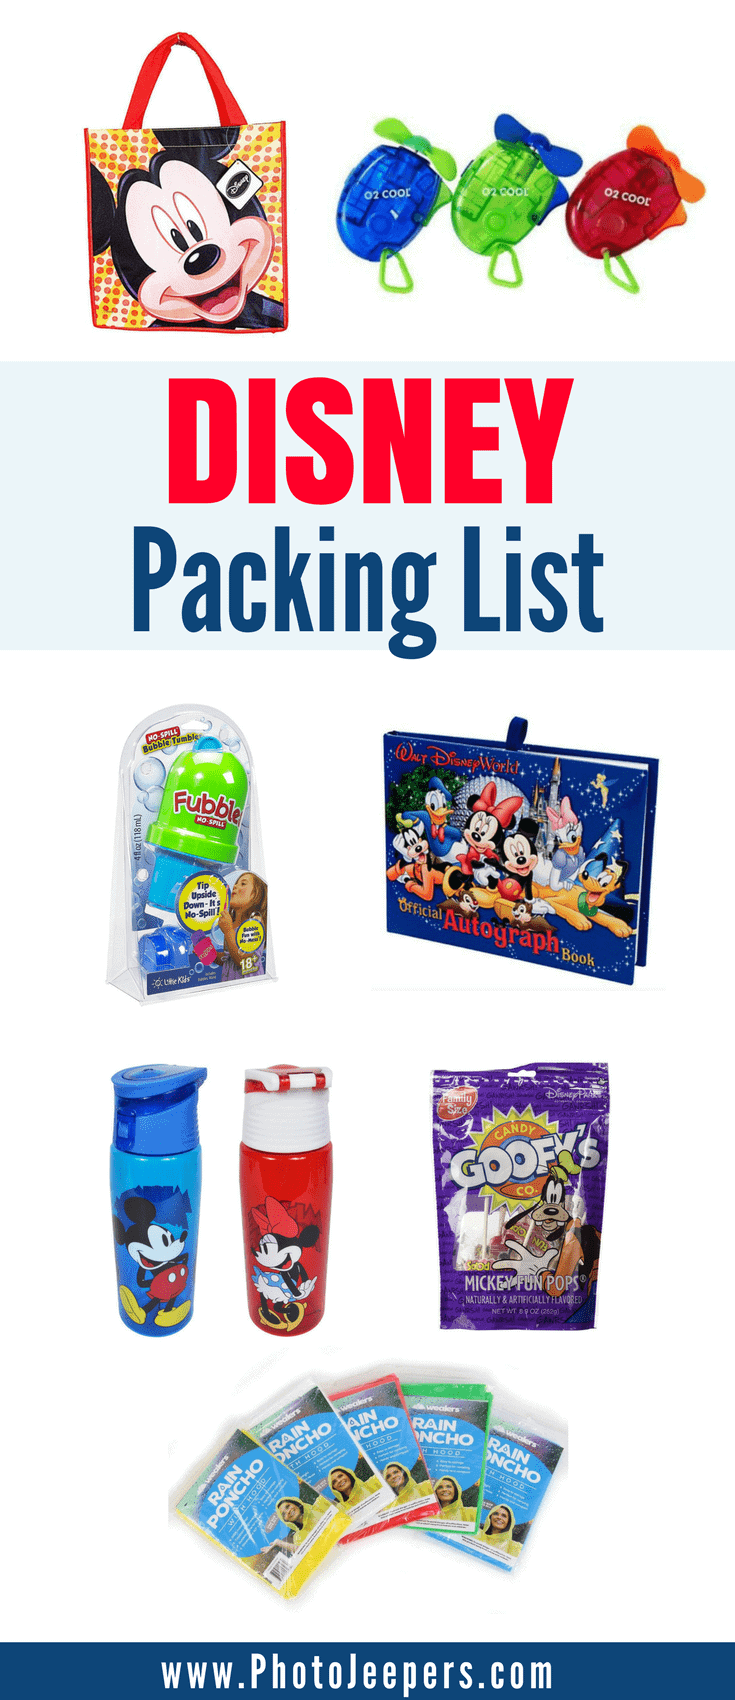 If you're planning a trip to Disney, you'll want to check out this Disney packing list first. It has everything you need to bring with you inside the Disney park including things to pack for kids. This packing list will be a lifesaver for Disney or any amusement park you may travel to this year. It includes items and tips for food & drink, clothing & gear, personal items and budget-friendly souvenirs and things to keep kids happy during the day. Make sure you save these things to bring for Disney to your travel board so you can find it later.